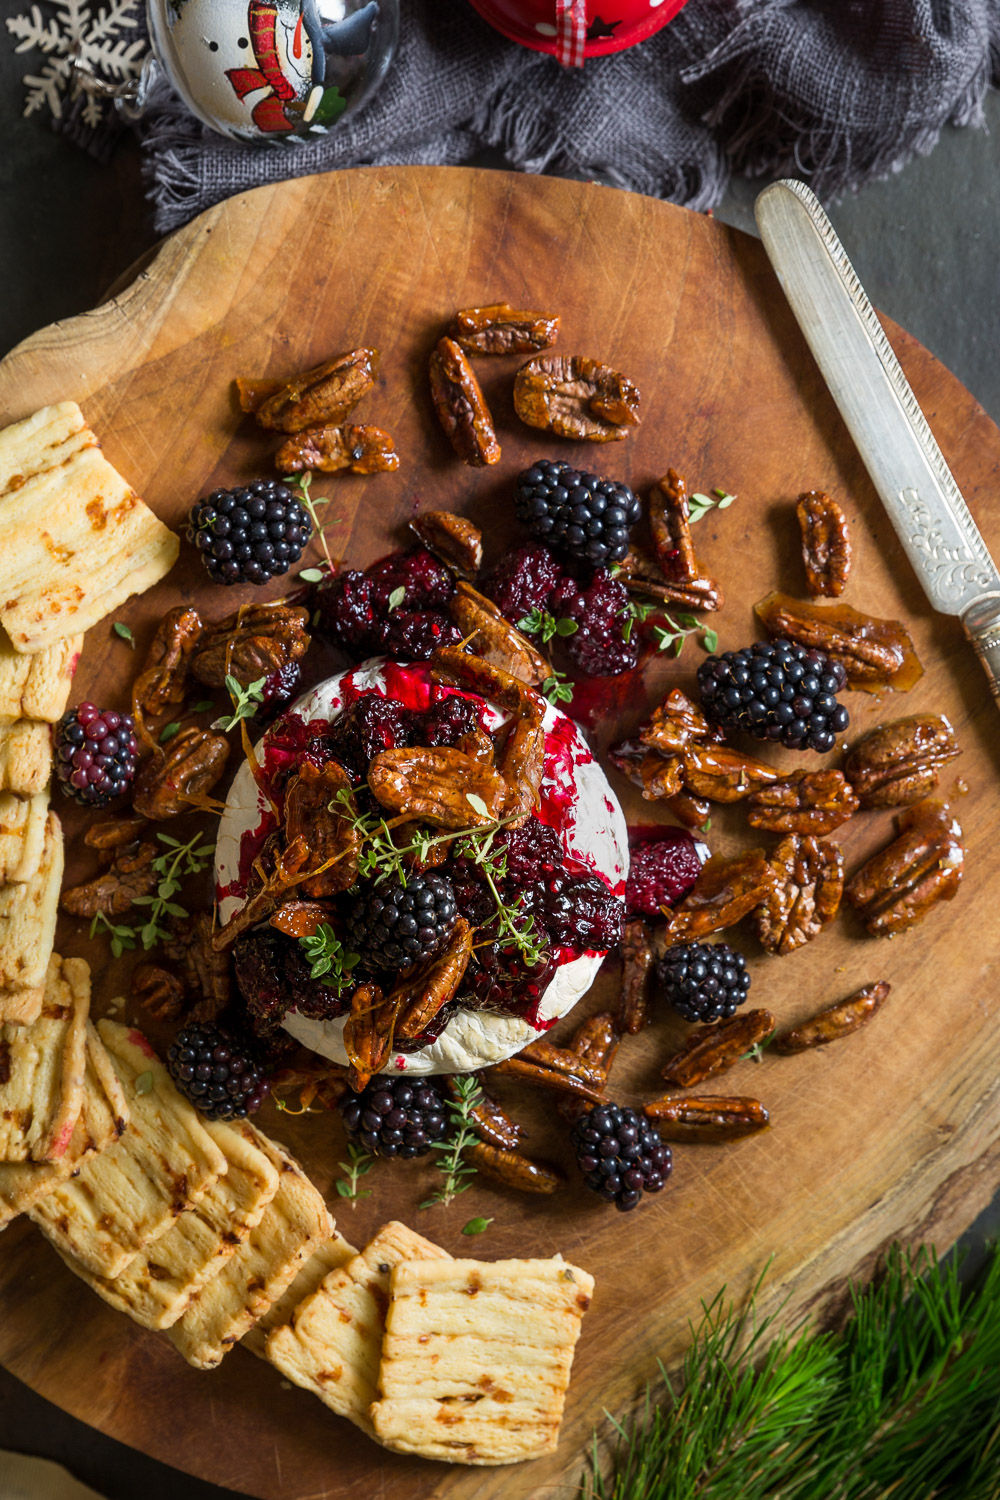 Baked camembert with blackberries and spiced pecans